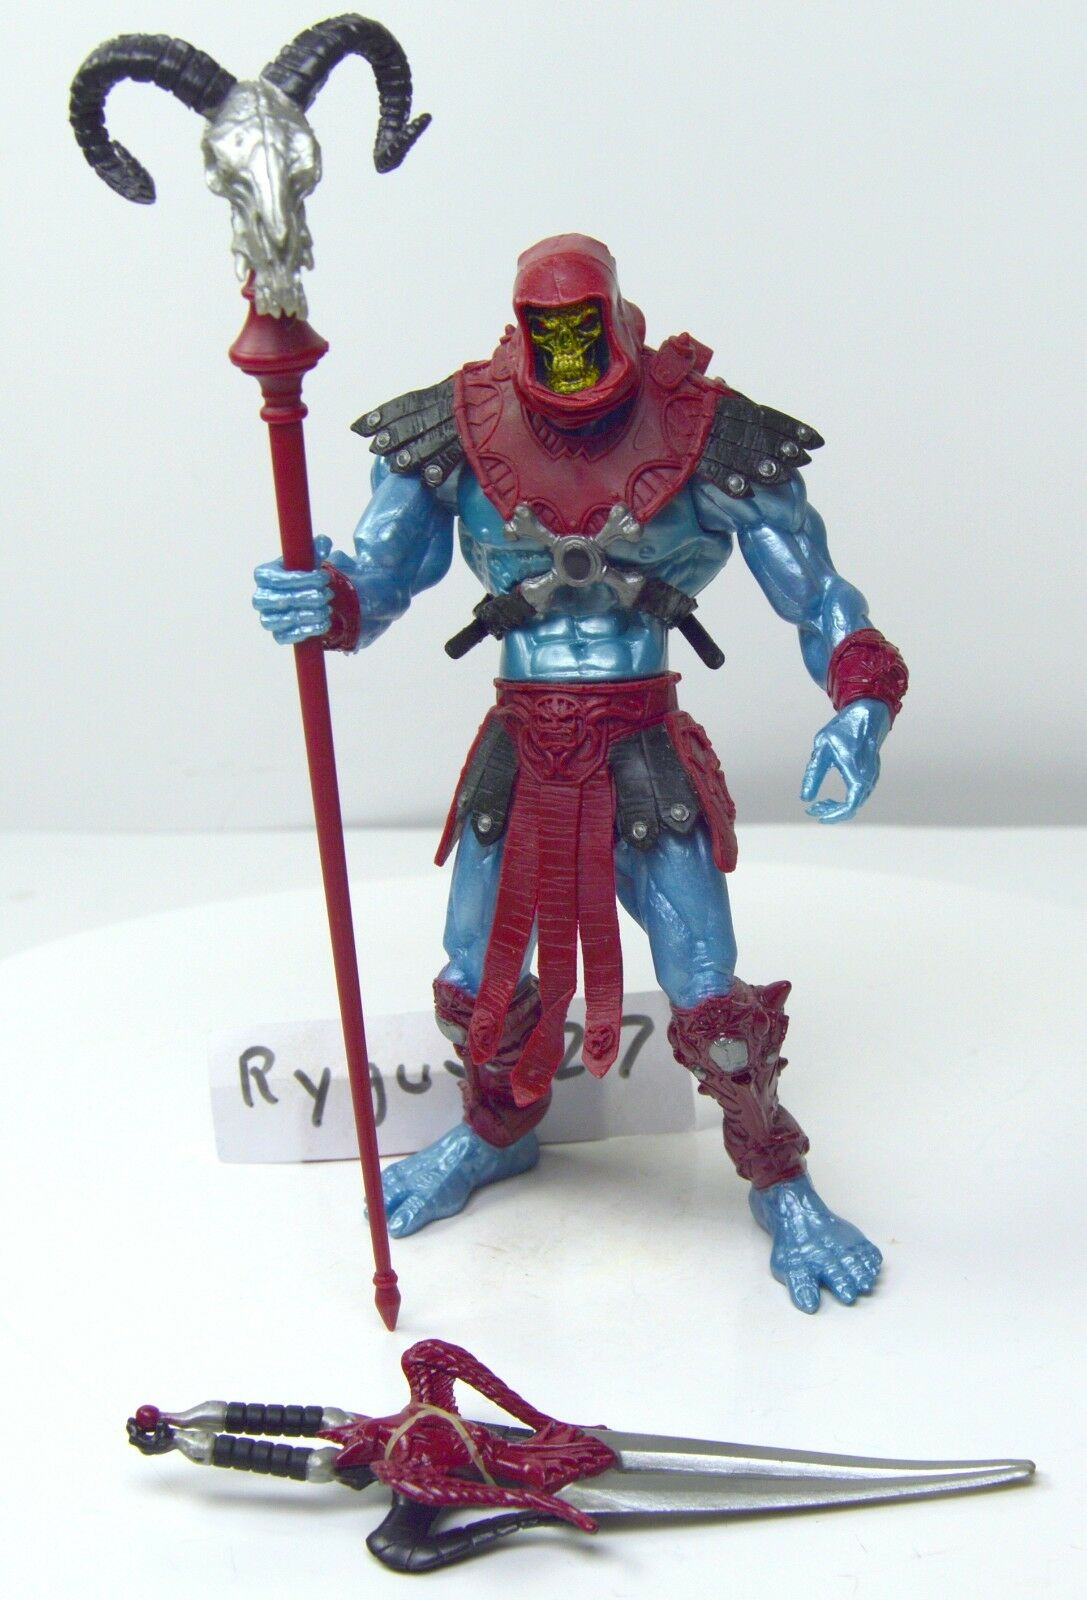 MOTU, Blood rosso Skeletor 200x, complete, figure, Masters of the Universe, He-Man